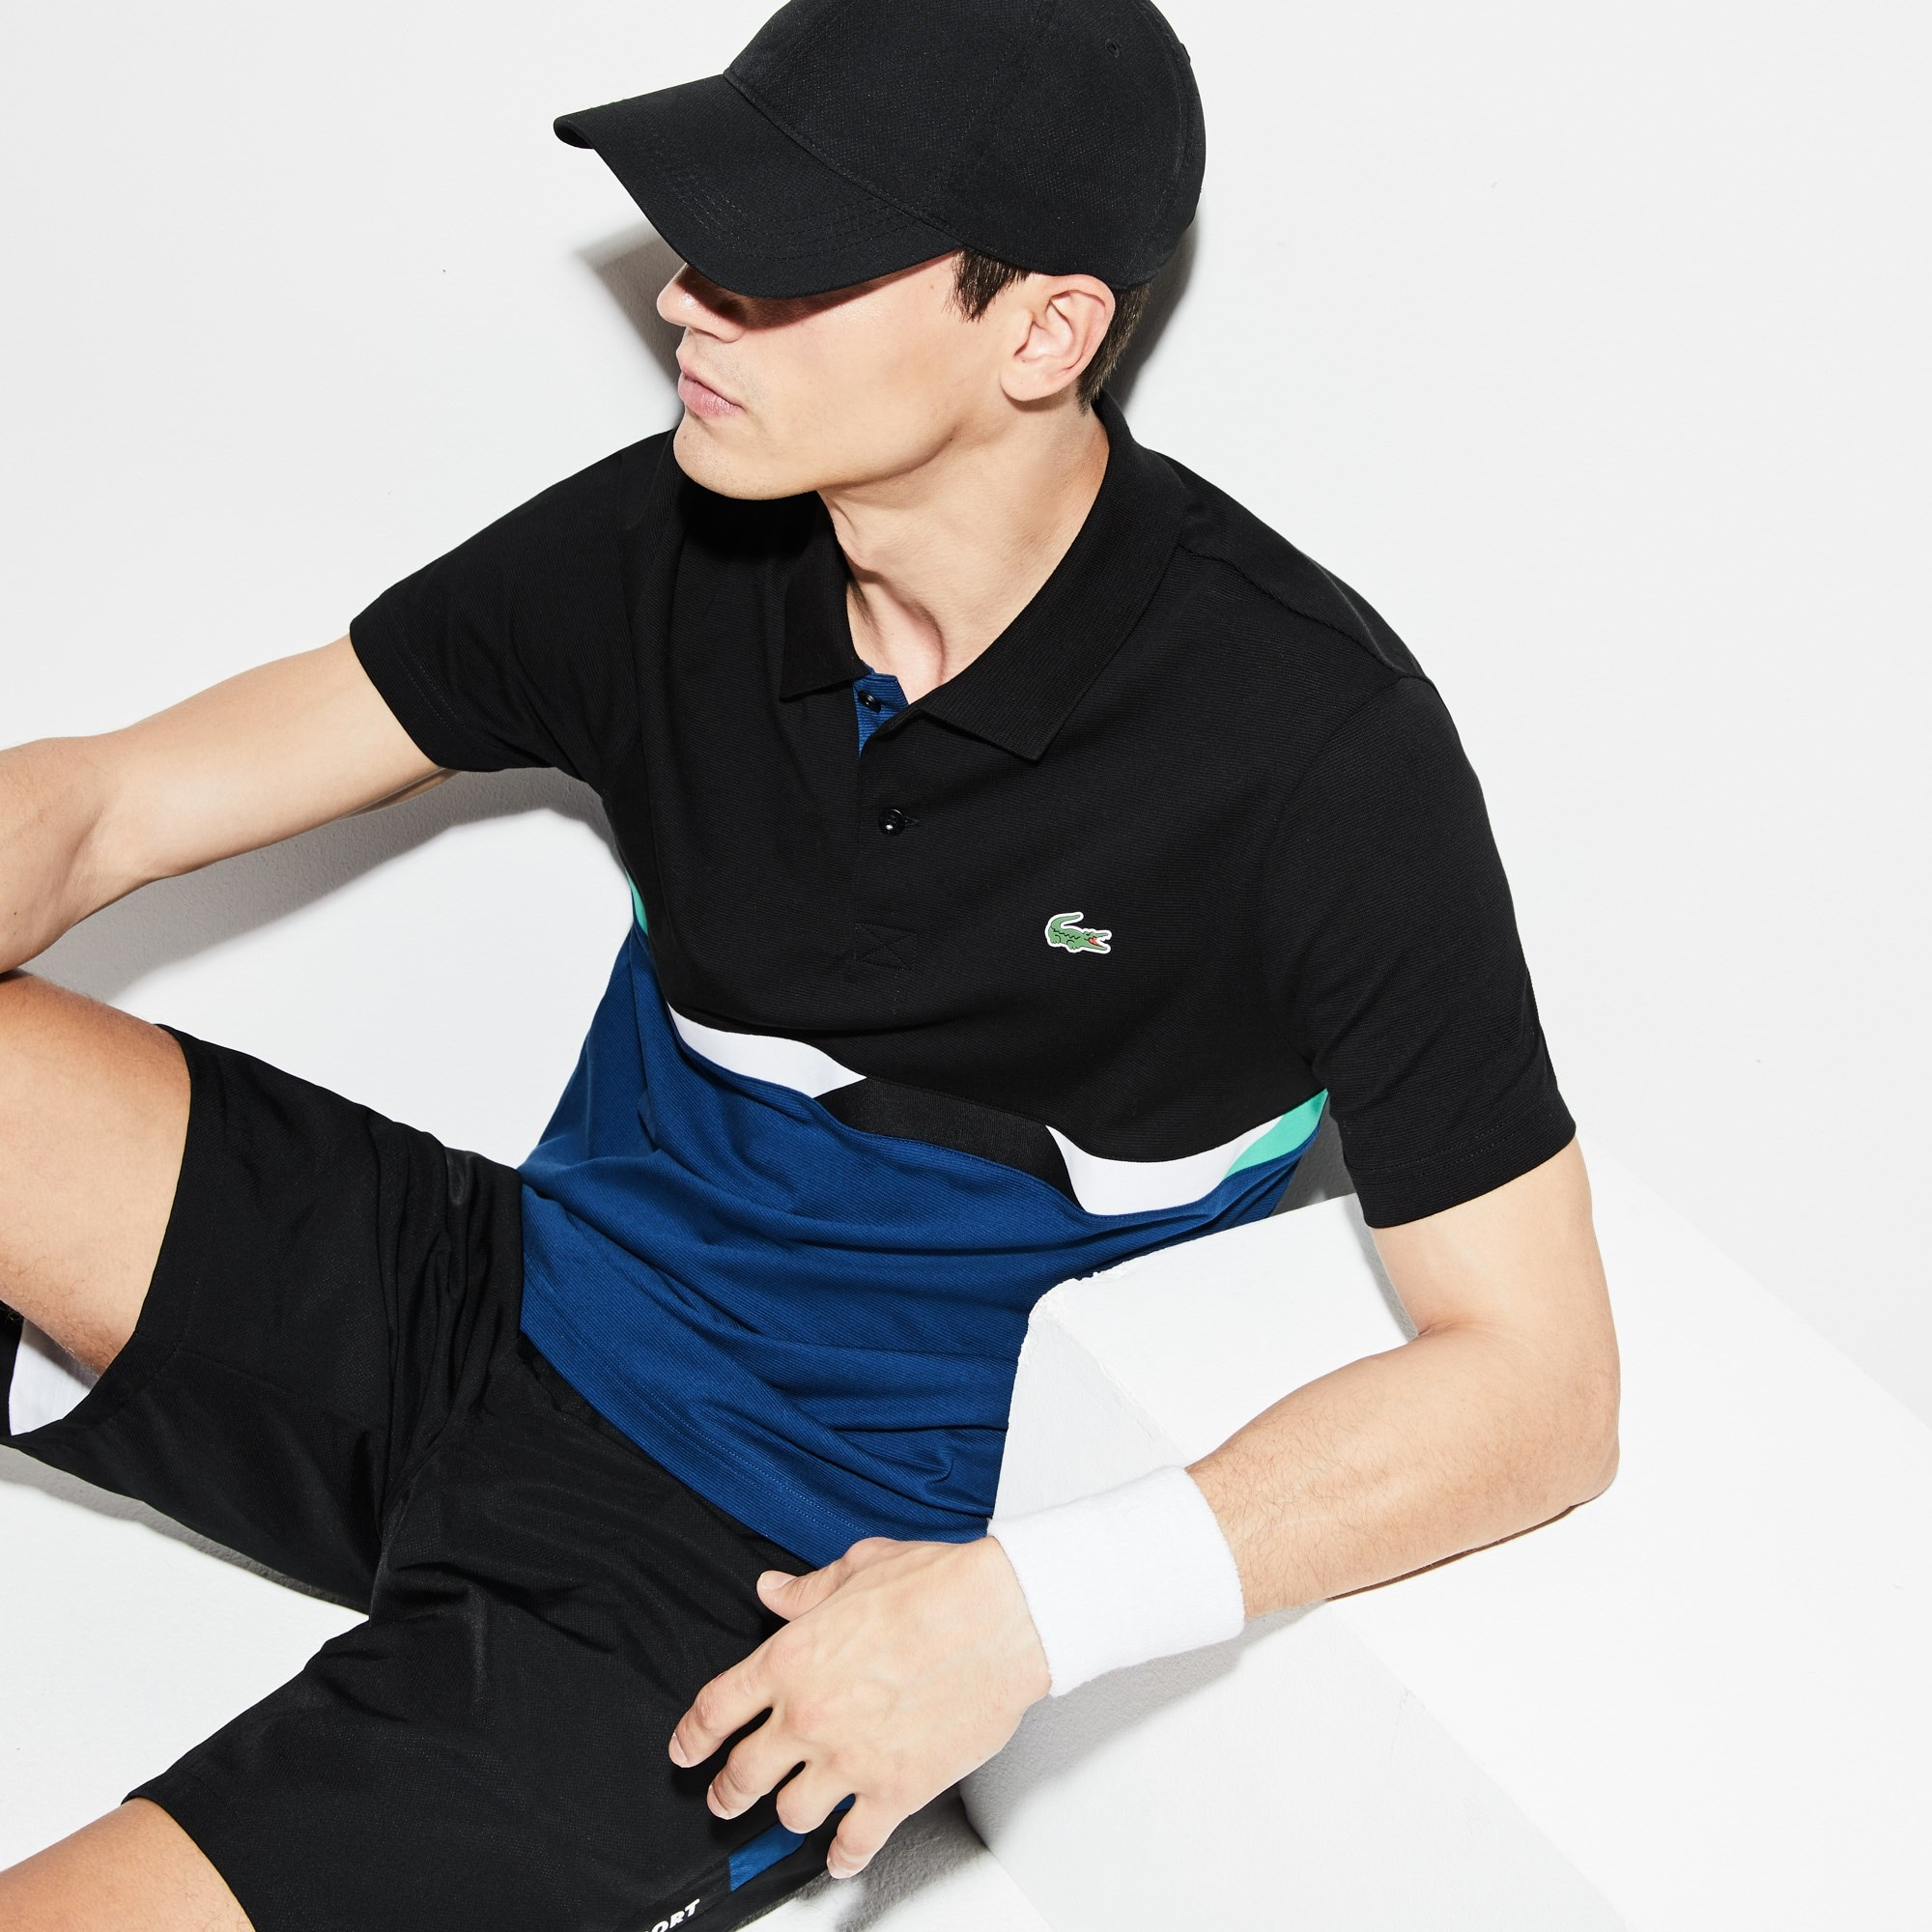 Men's Lacoste SPORT Colorblock Ultra-Light Cotton Tennis Polo